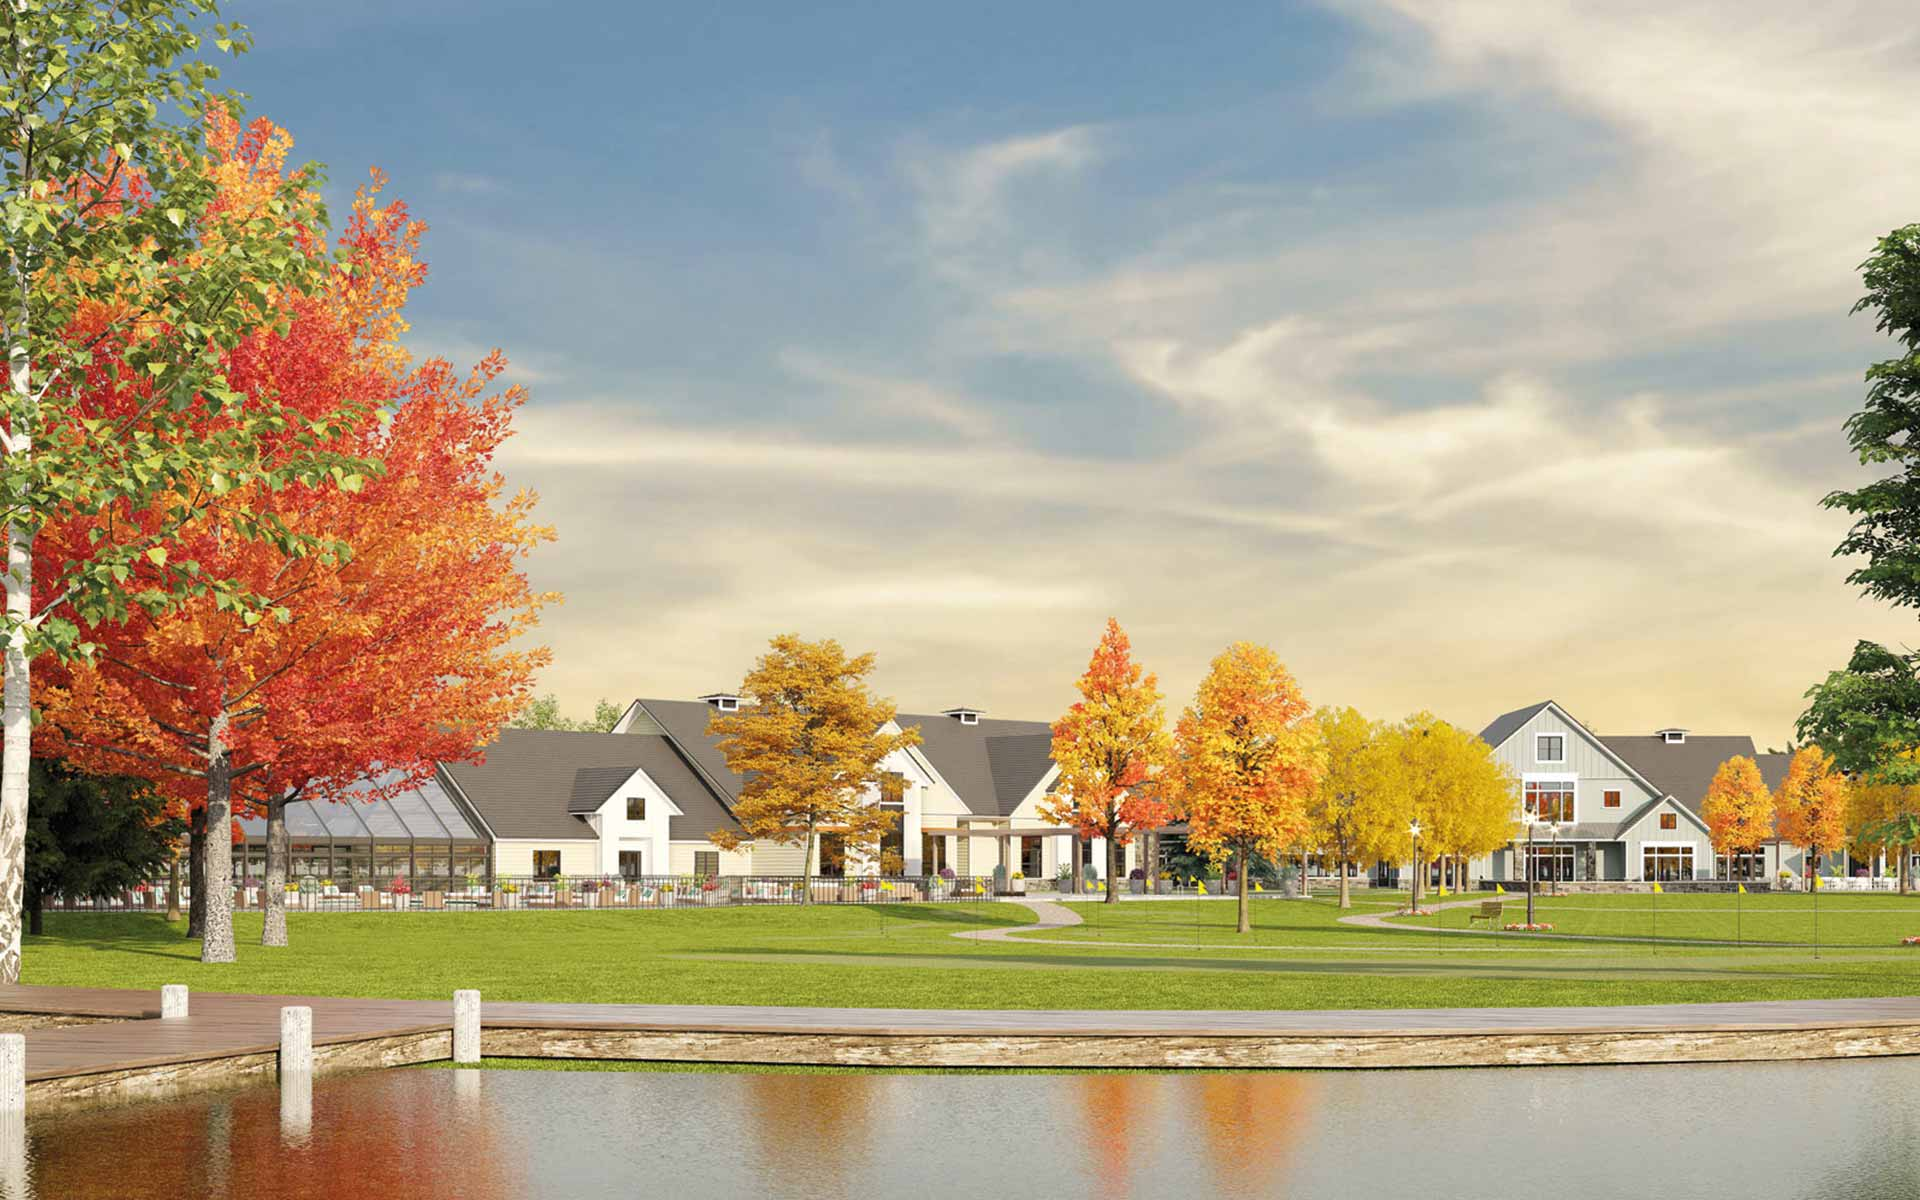 An image of the Rock Creek development owned by Henley Investments Masterplan & Land Infrastructure